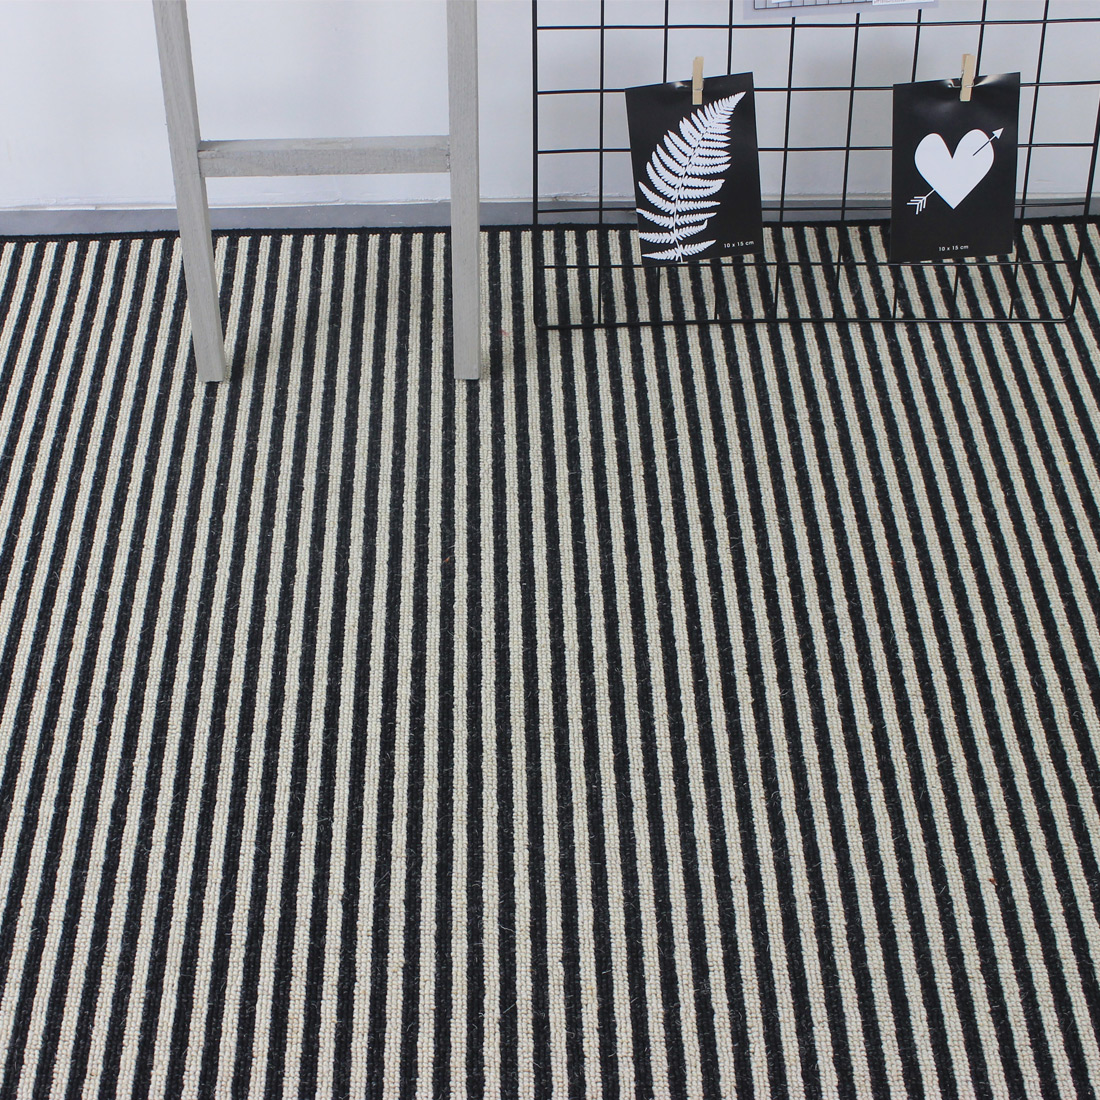 Vloerkleed Boston (wol) Stripe Zebra